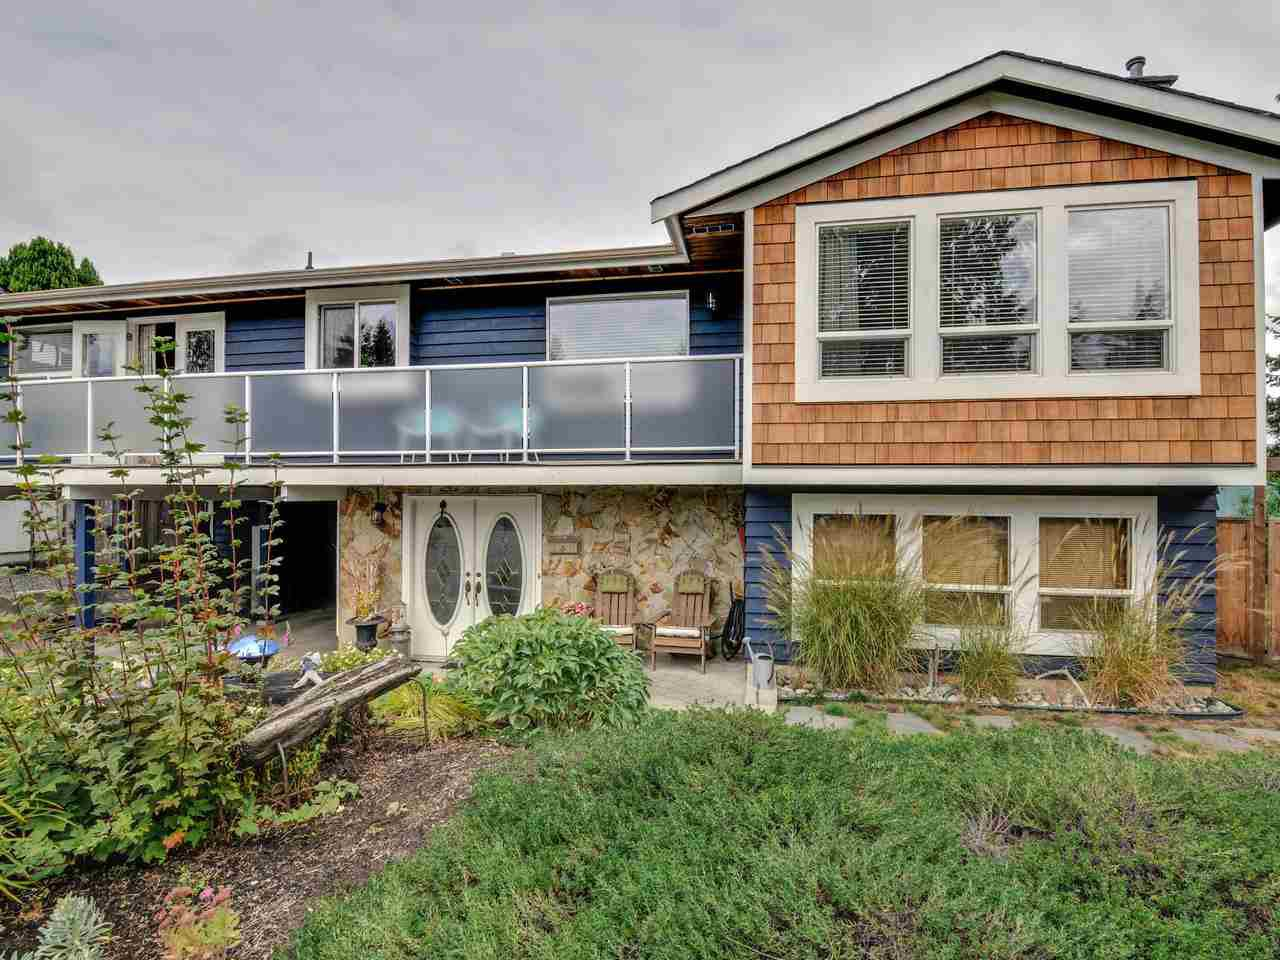 Main Photo: 9152 118A Street in Delta: Annieville House for sale (N. Delta)  : MLS®# R2319810